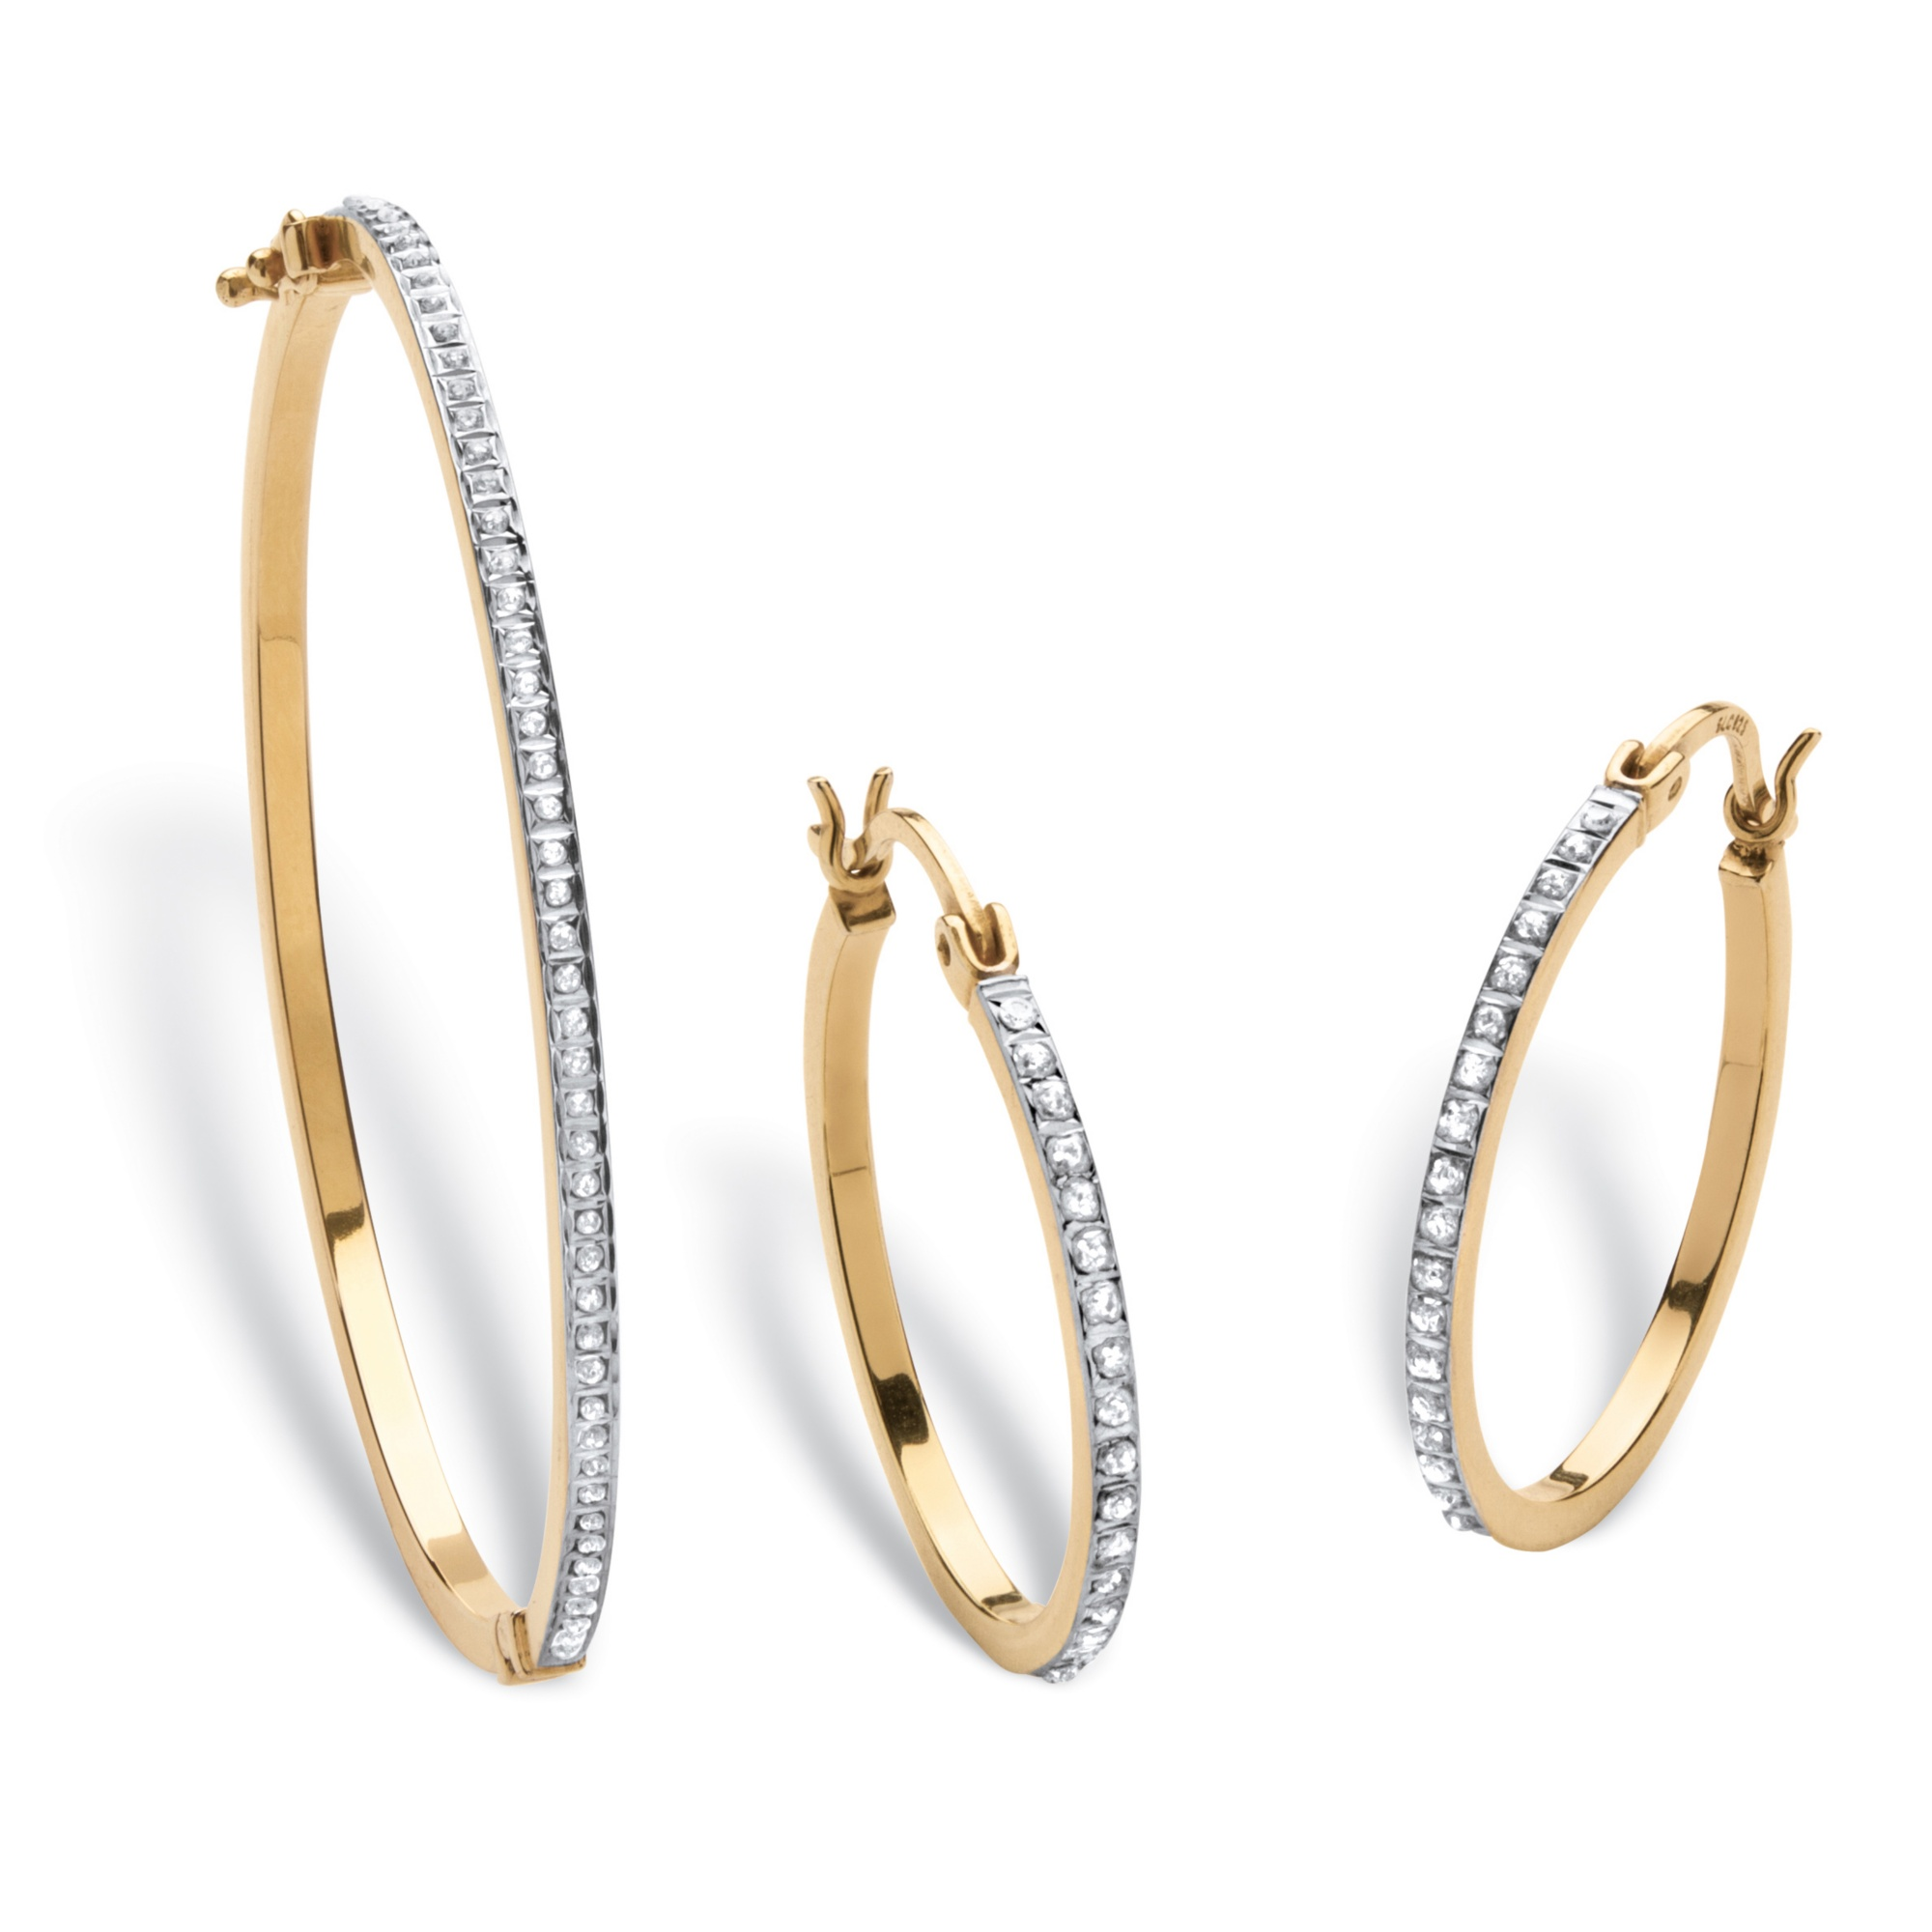 7bf8c7262 Diamond Fascination Bracelet and Earrings Set in 18k Gold over .925 Sterling  Silver